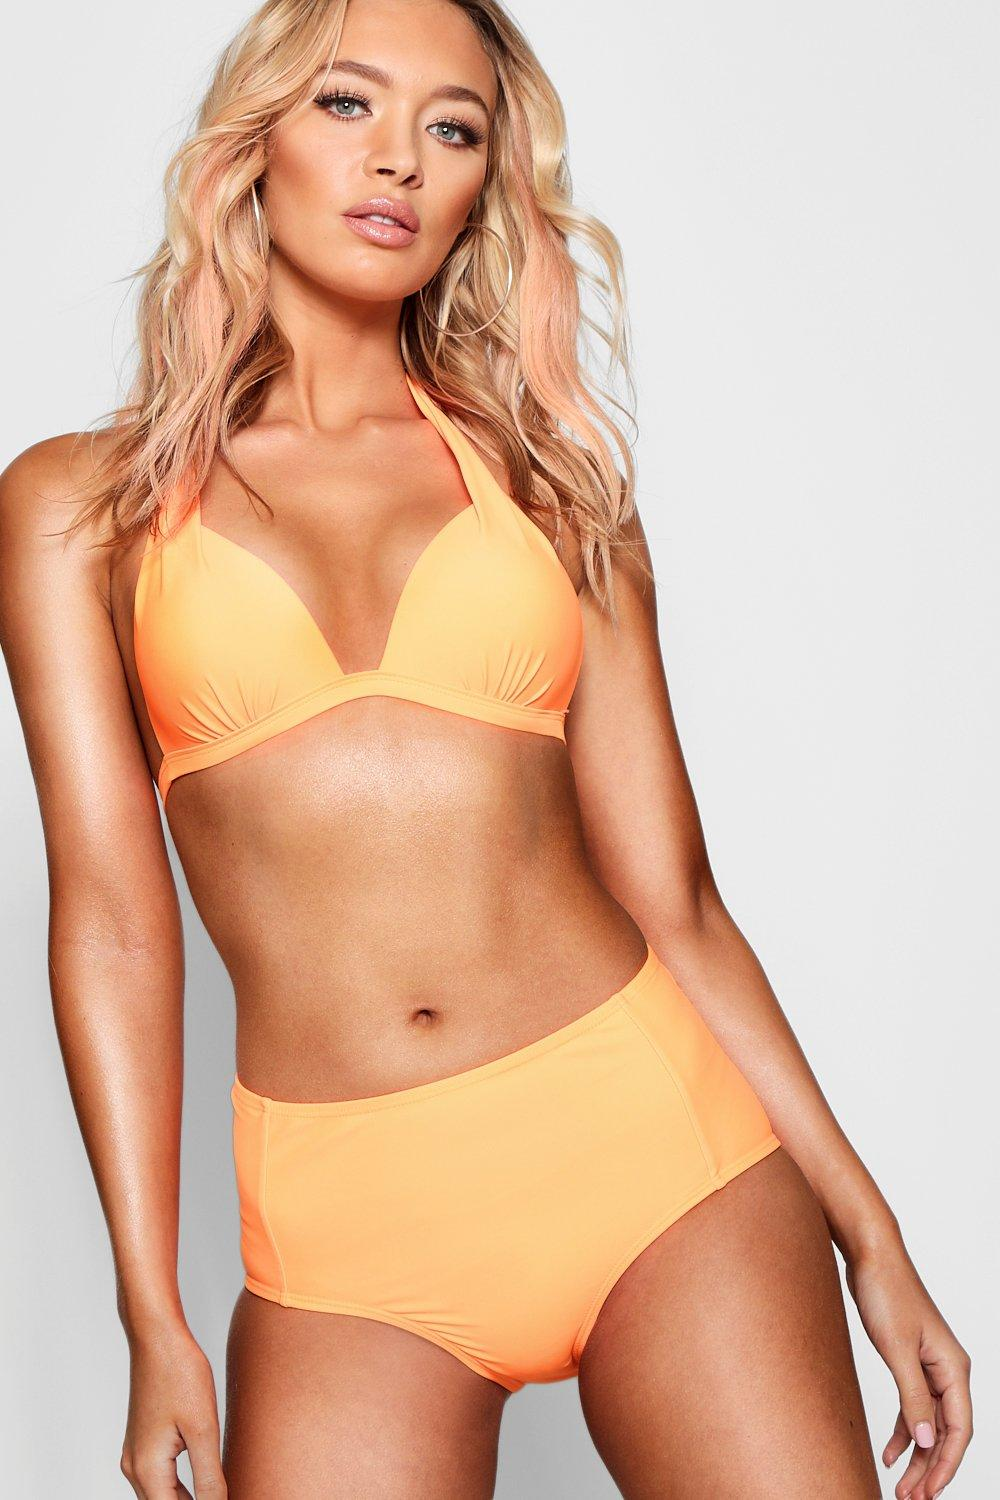 Mix Plunge Push orange Match Bikini Top Triangle Up amp; rOa4qr